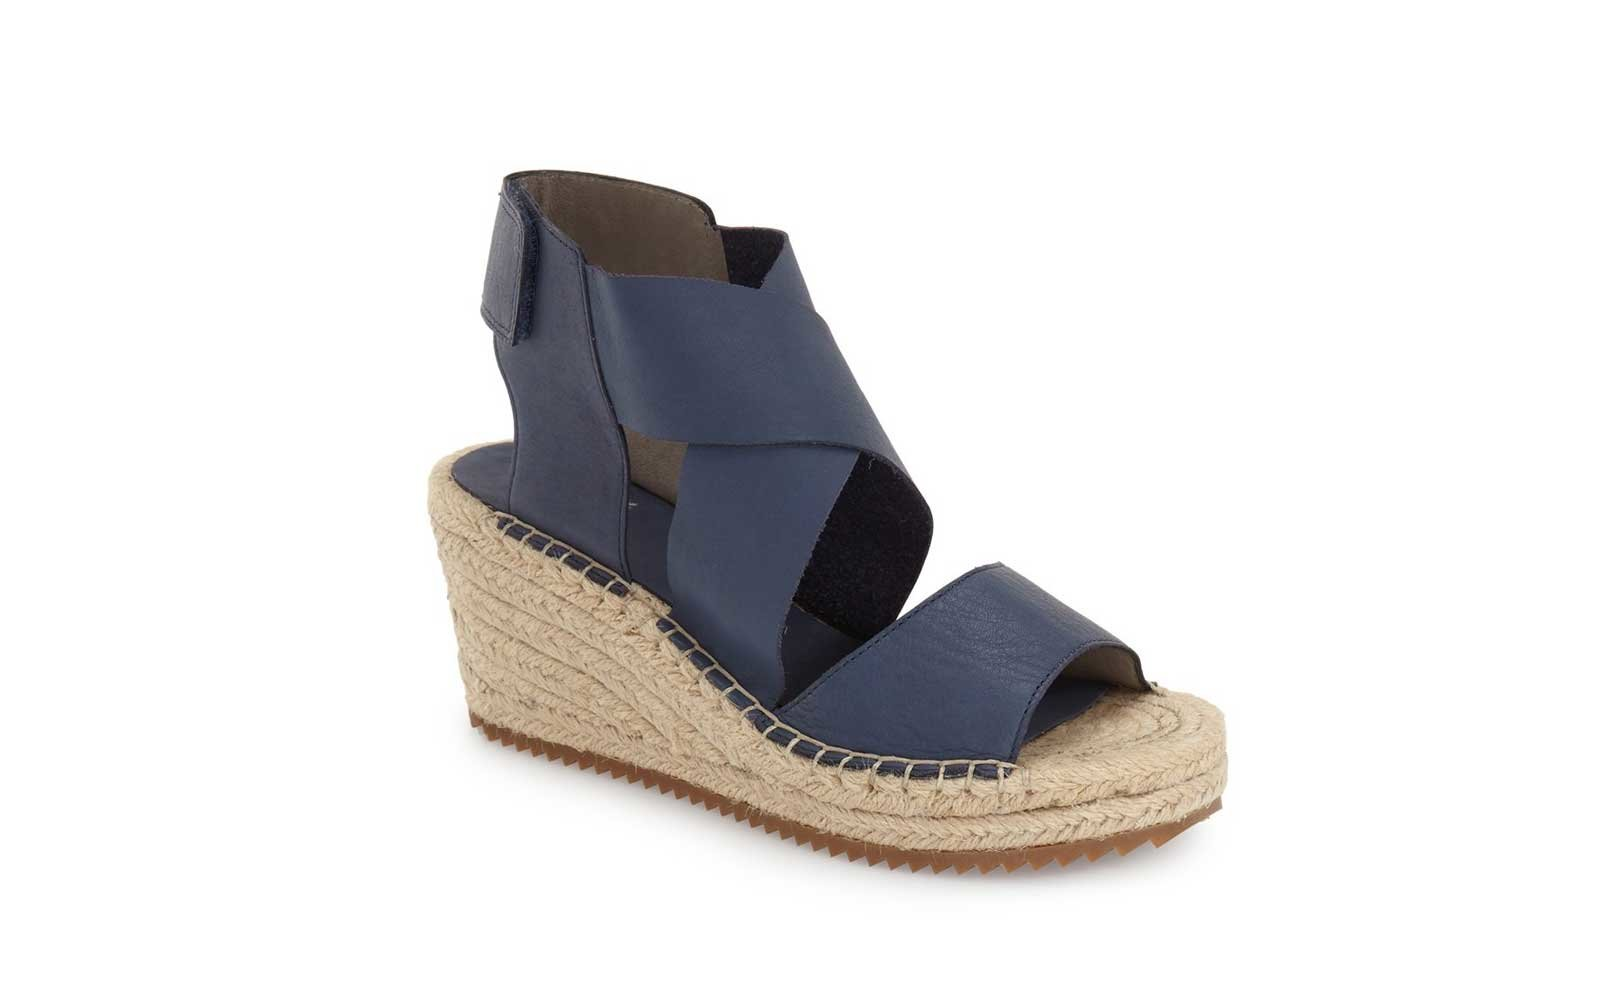 6c0a834b8b053 Walkable Wedges  Eileen Fisher  Willow  Espadrille Wedge Sandal